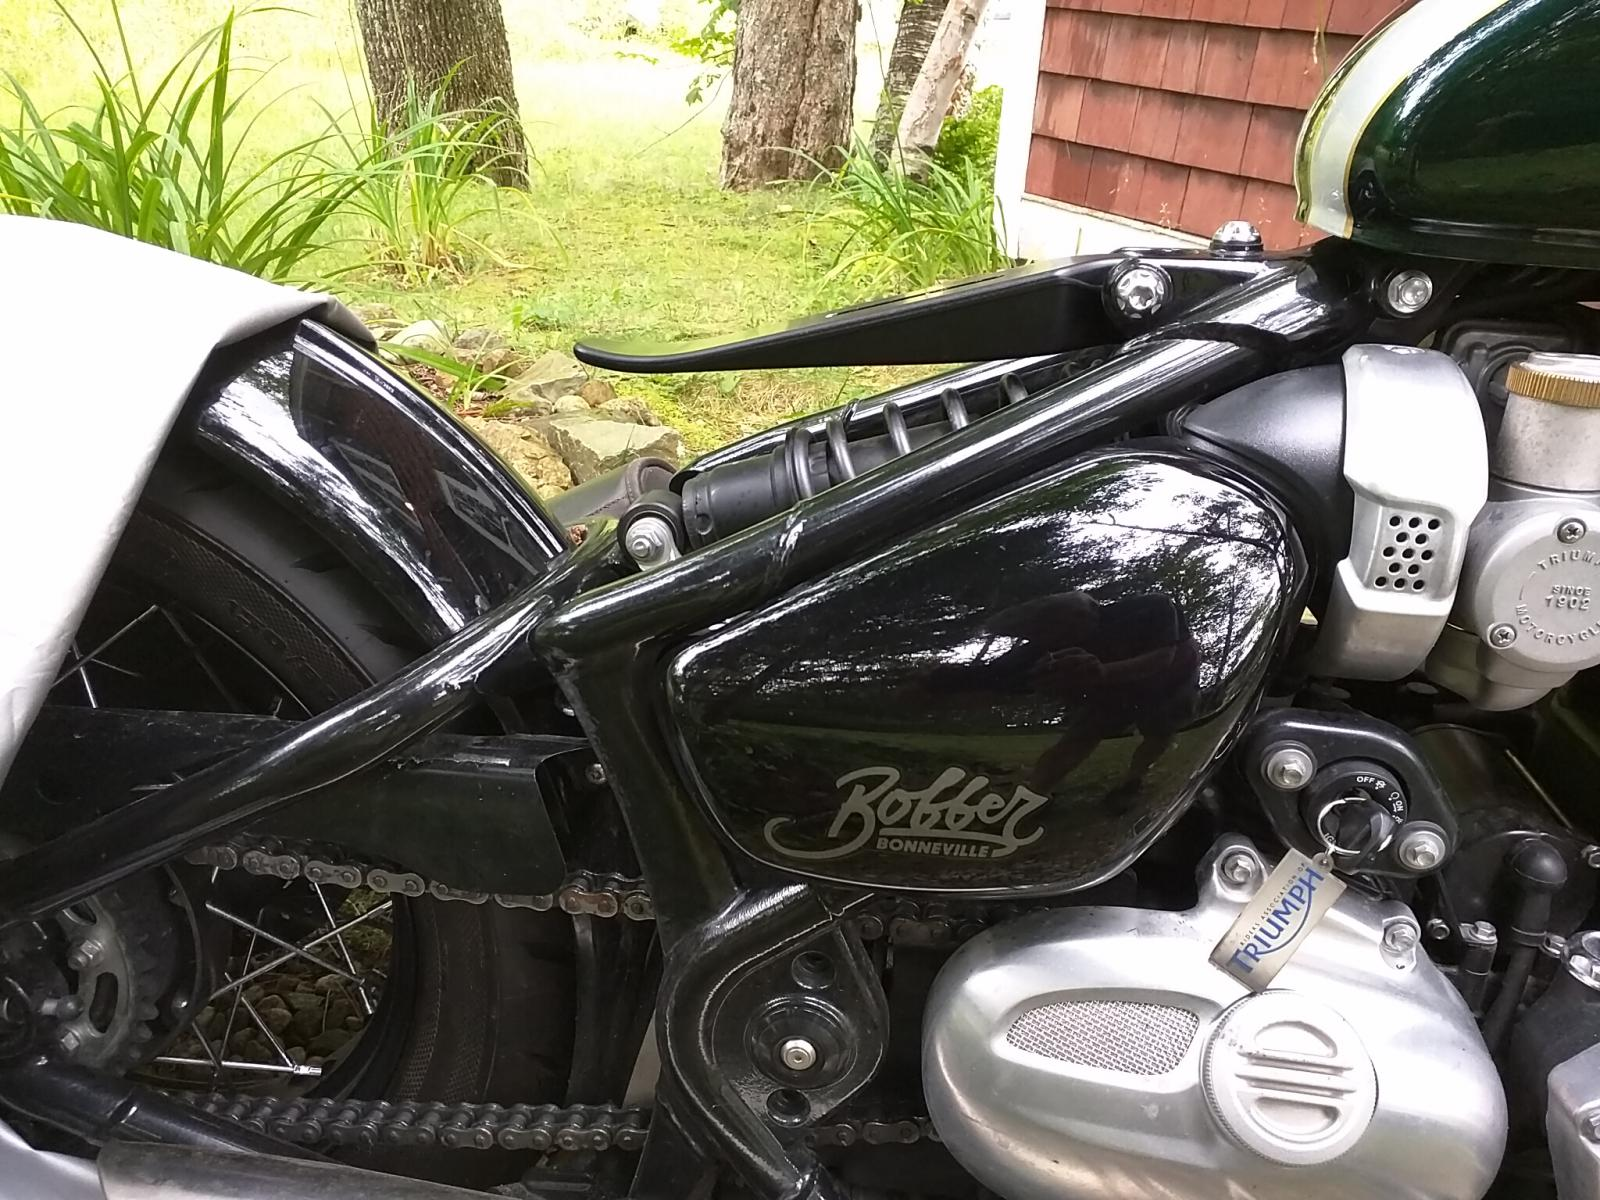 Seat Adjustment And Shimming To Change Height Angle Triumph Bobber Forum